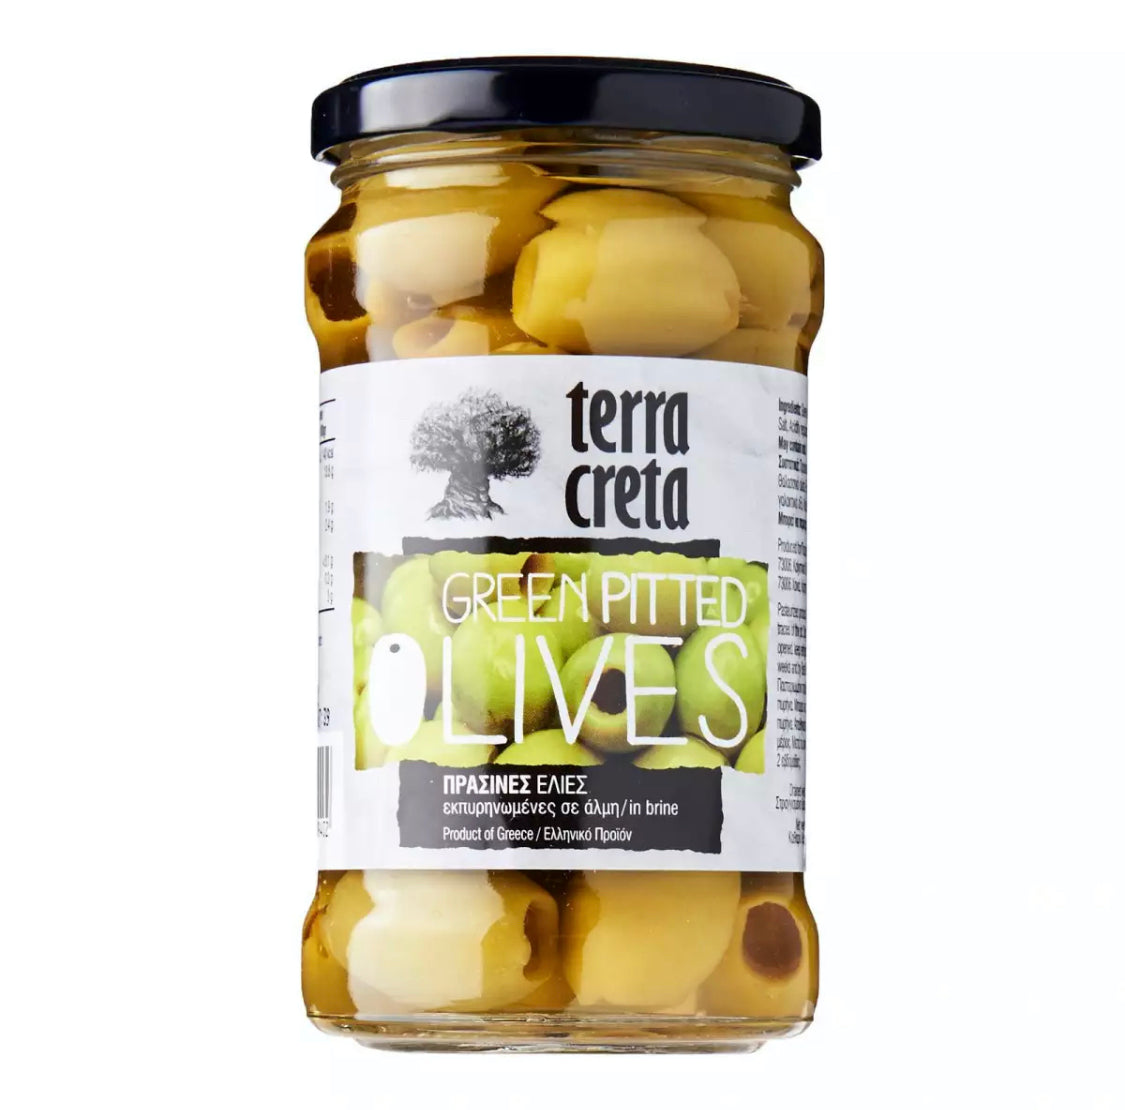 Terra Creta Greek Pitted Green Olives - 290gr